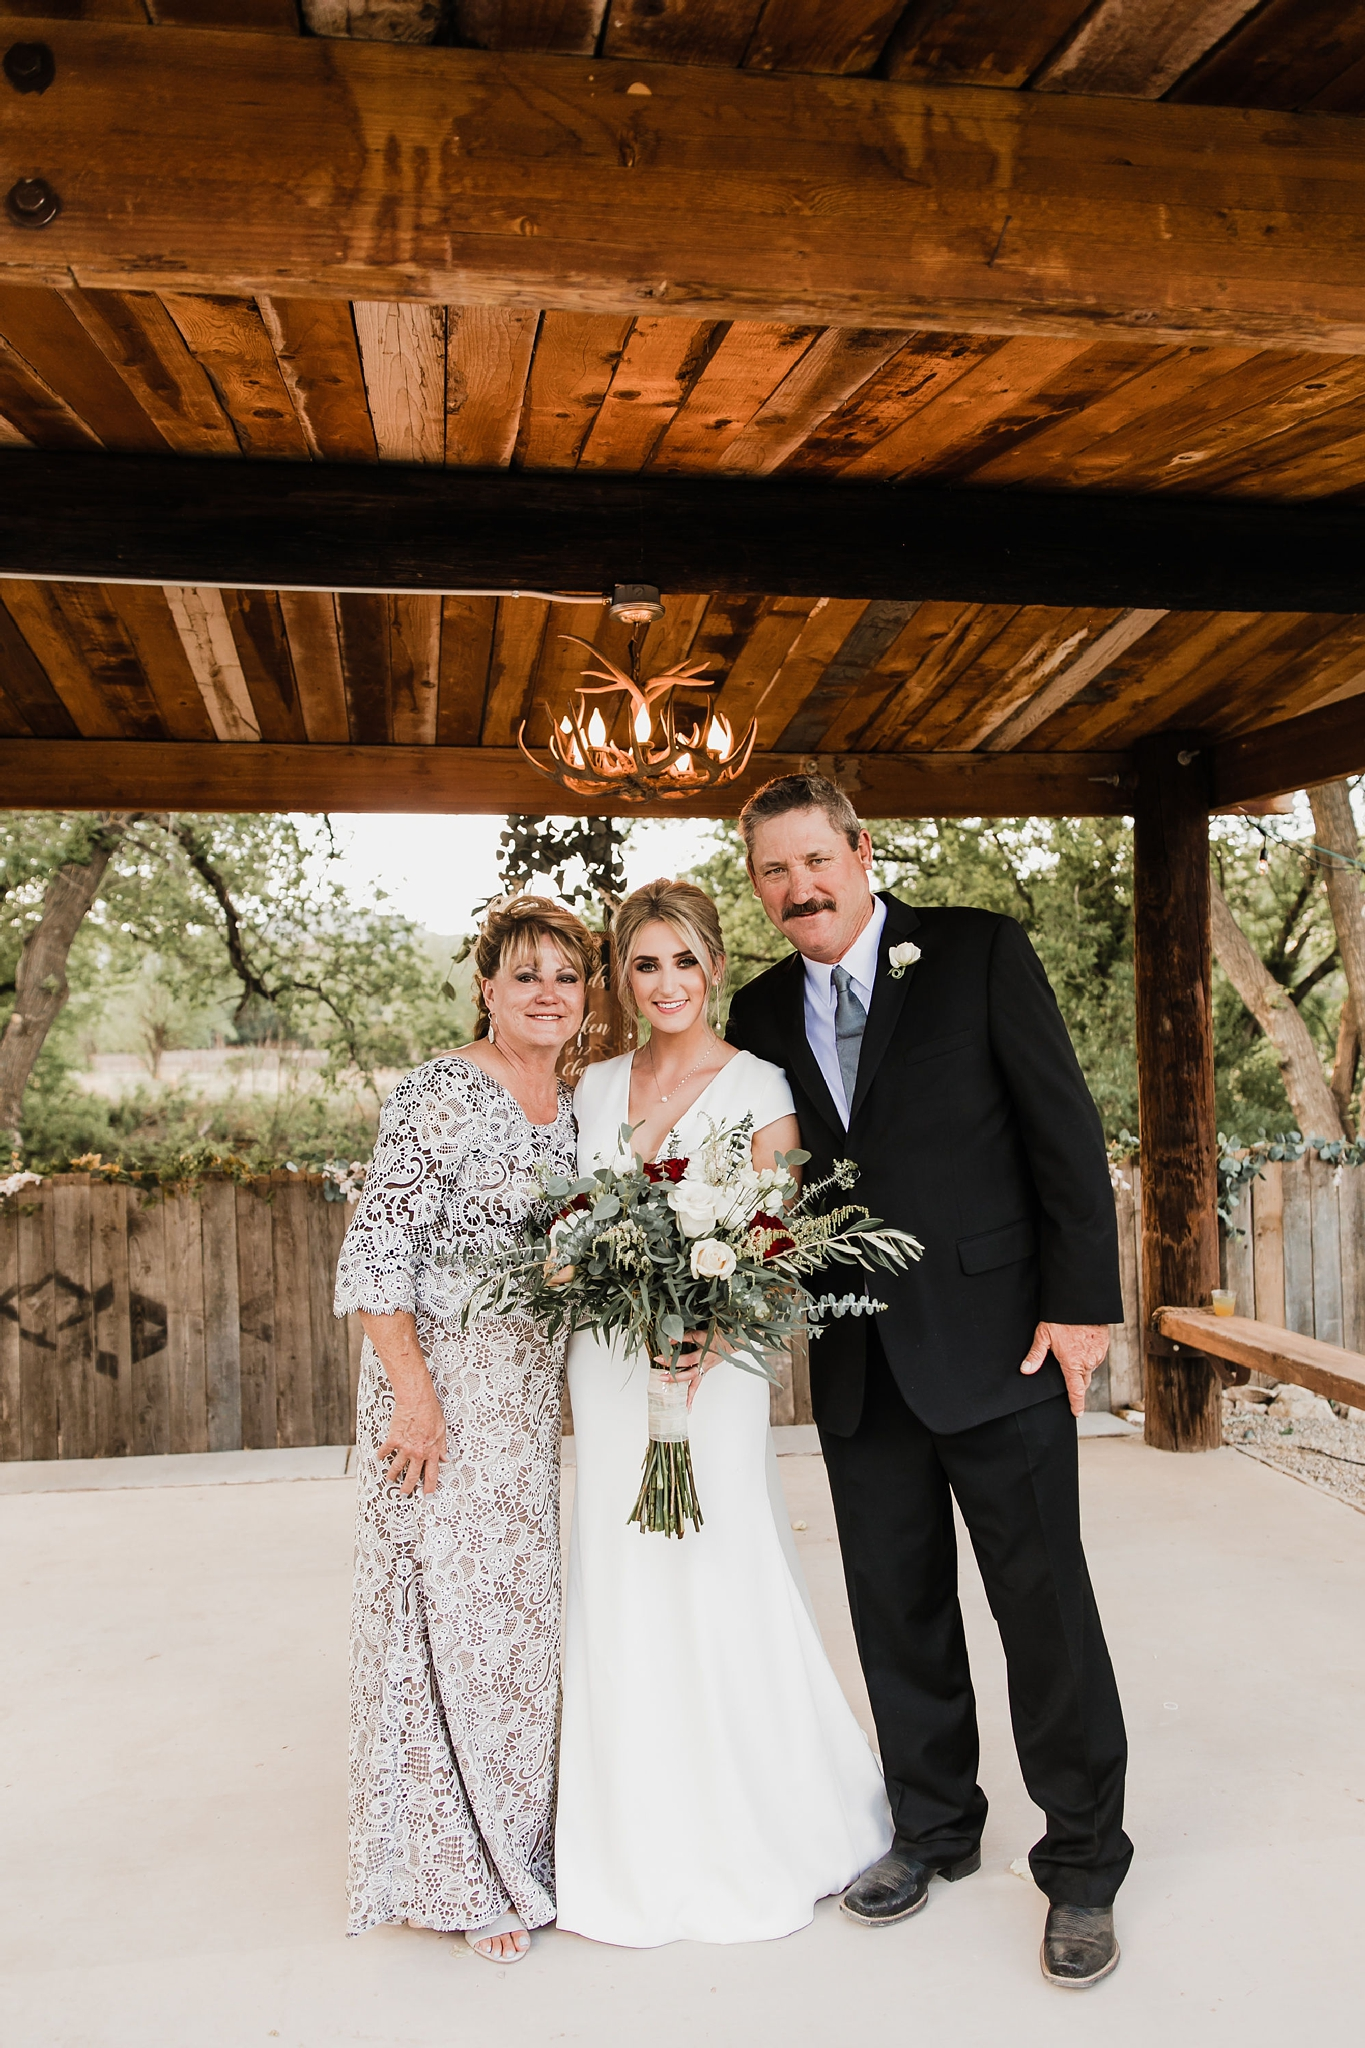 Alicia+lucia+photography+-+albuquerque+wedding+photographer+-+santa+fe+wedding+photography+-+new+mexico+wedding+photographer+-+new+mexico+wedding+-+ruidoso+wedding+-+southern+new+mexico+wedding+-+san+patricio+wedding+-+spring+wedding_0083.jpg